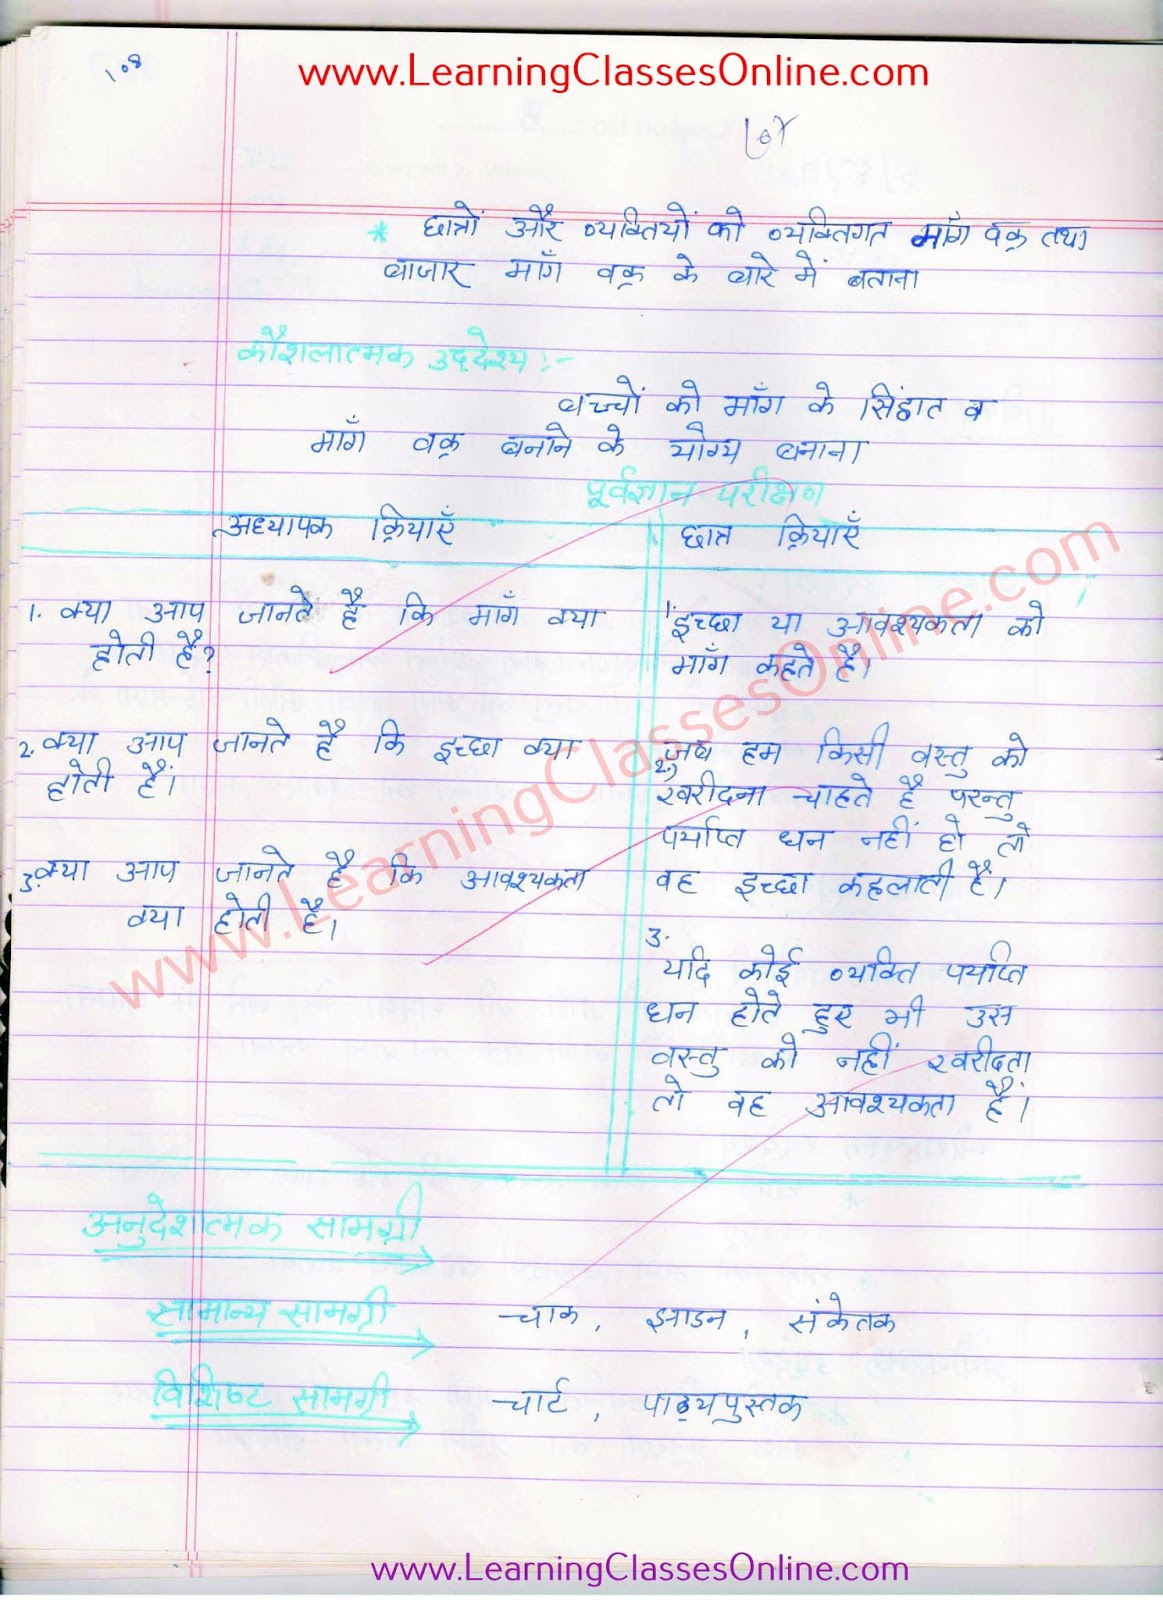 mang dharna economics b.ed lesson plan in hindi for class 12